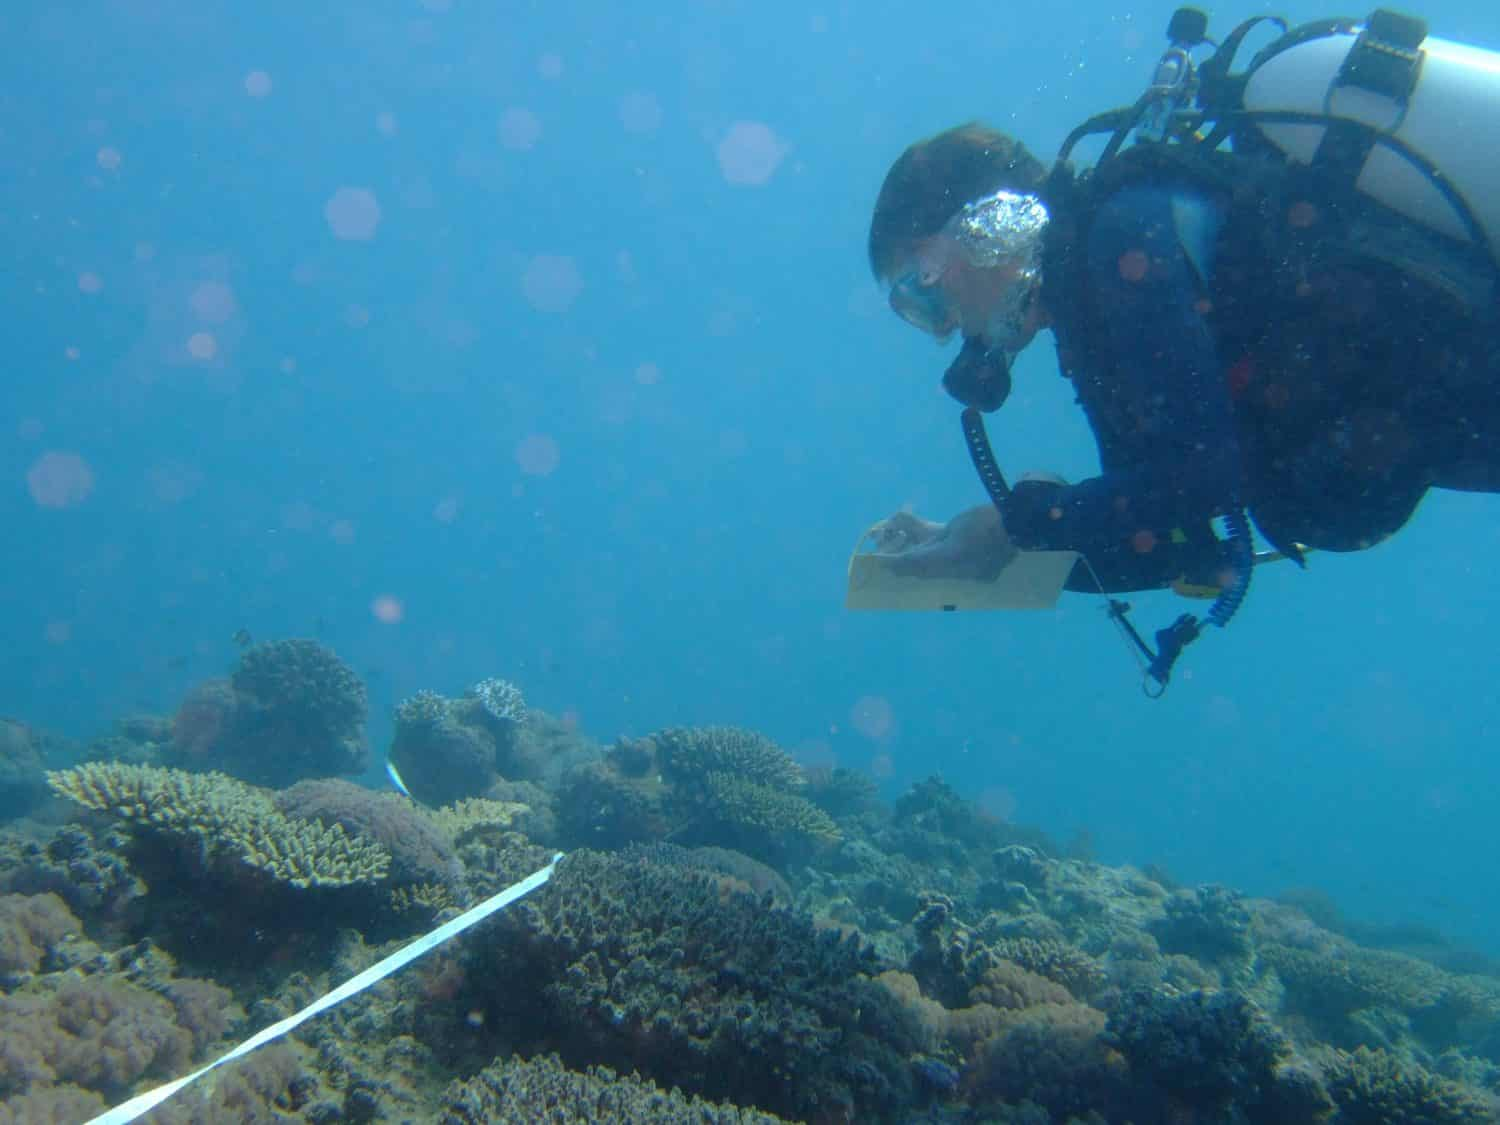 Conducting a reef survey